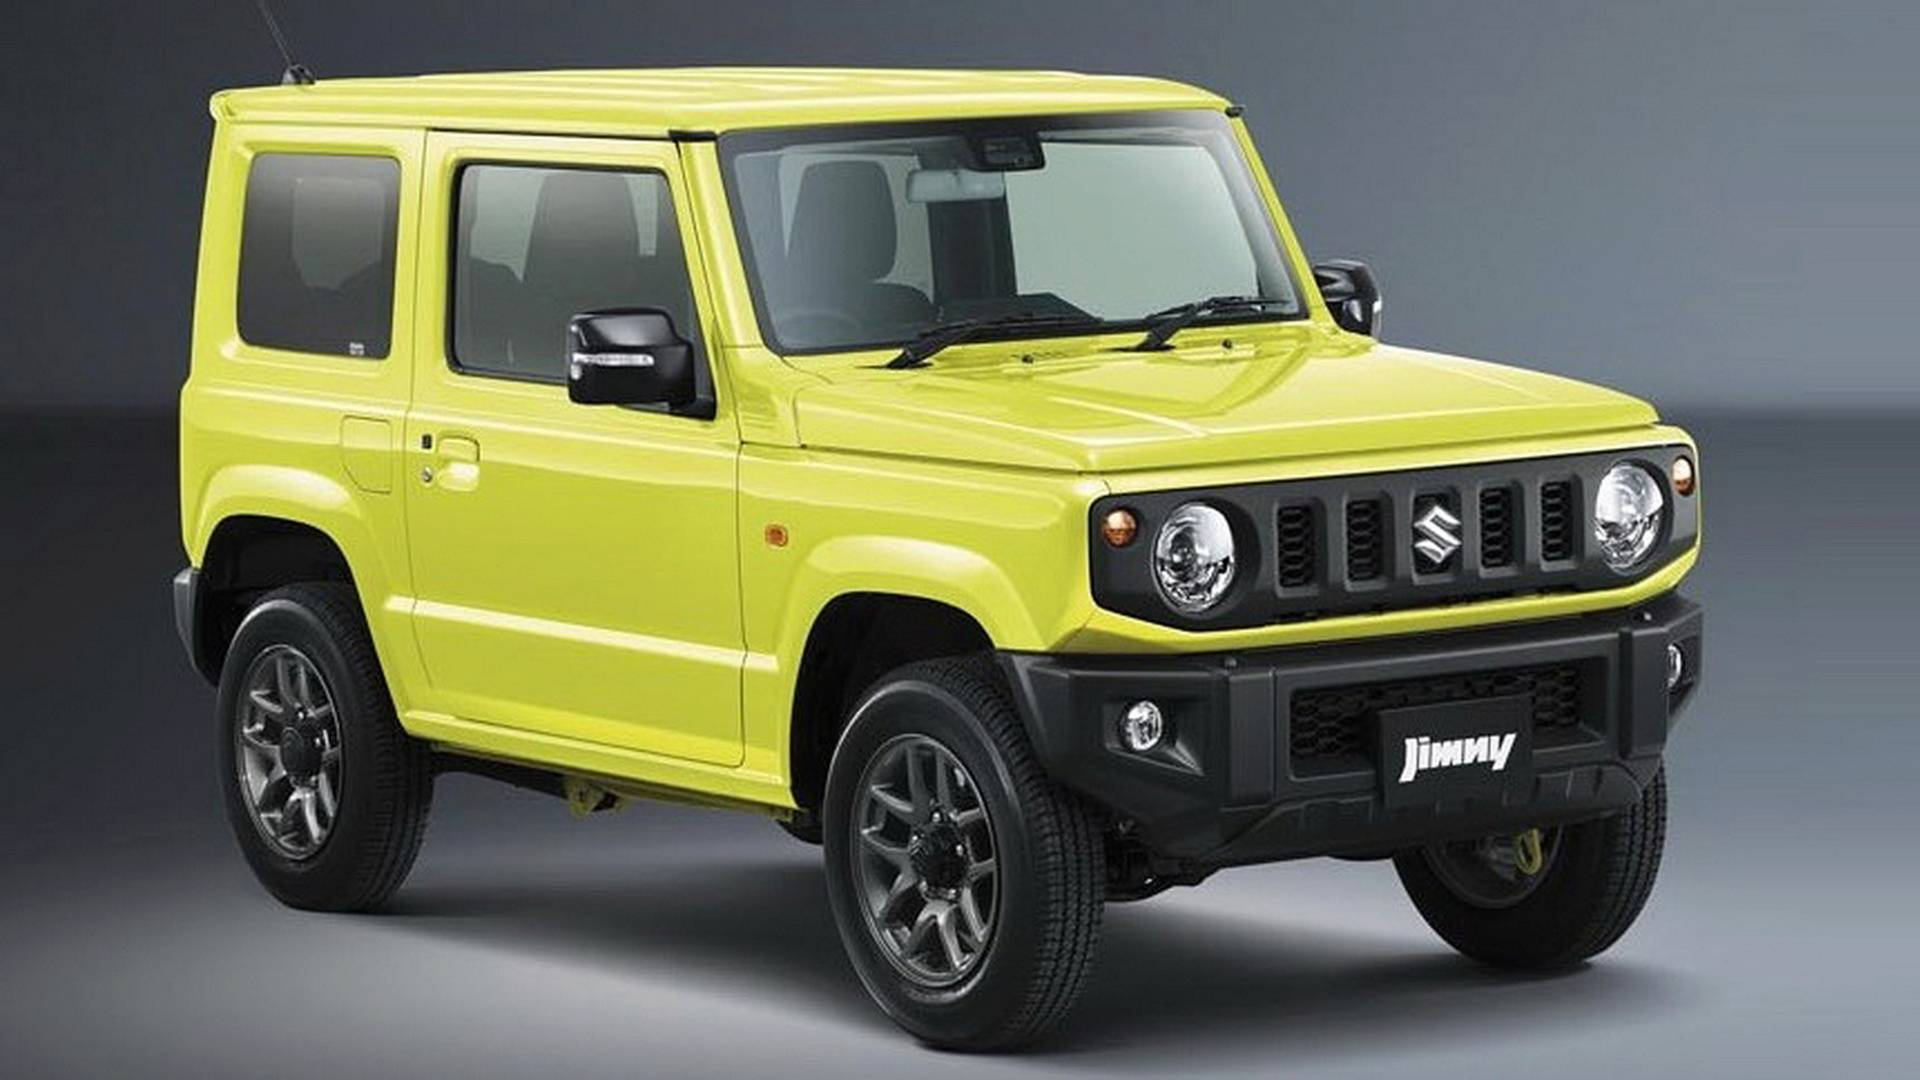 2018 suzuki jimny gets 1 5 liter engine in europe. Black Bedroom Furniture Sets. Home Design Ideas